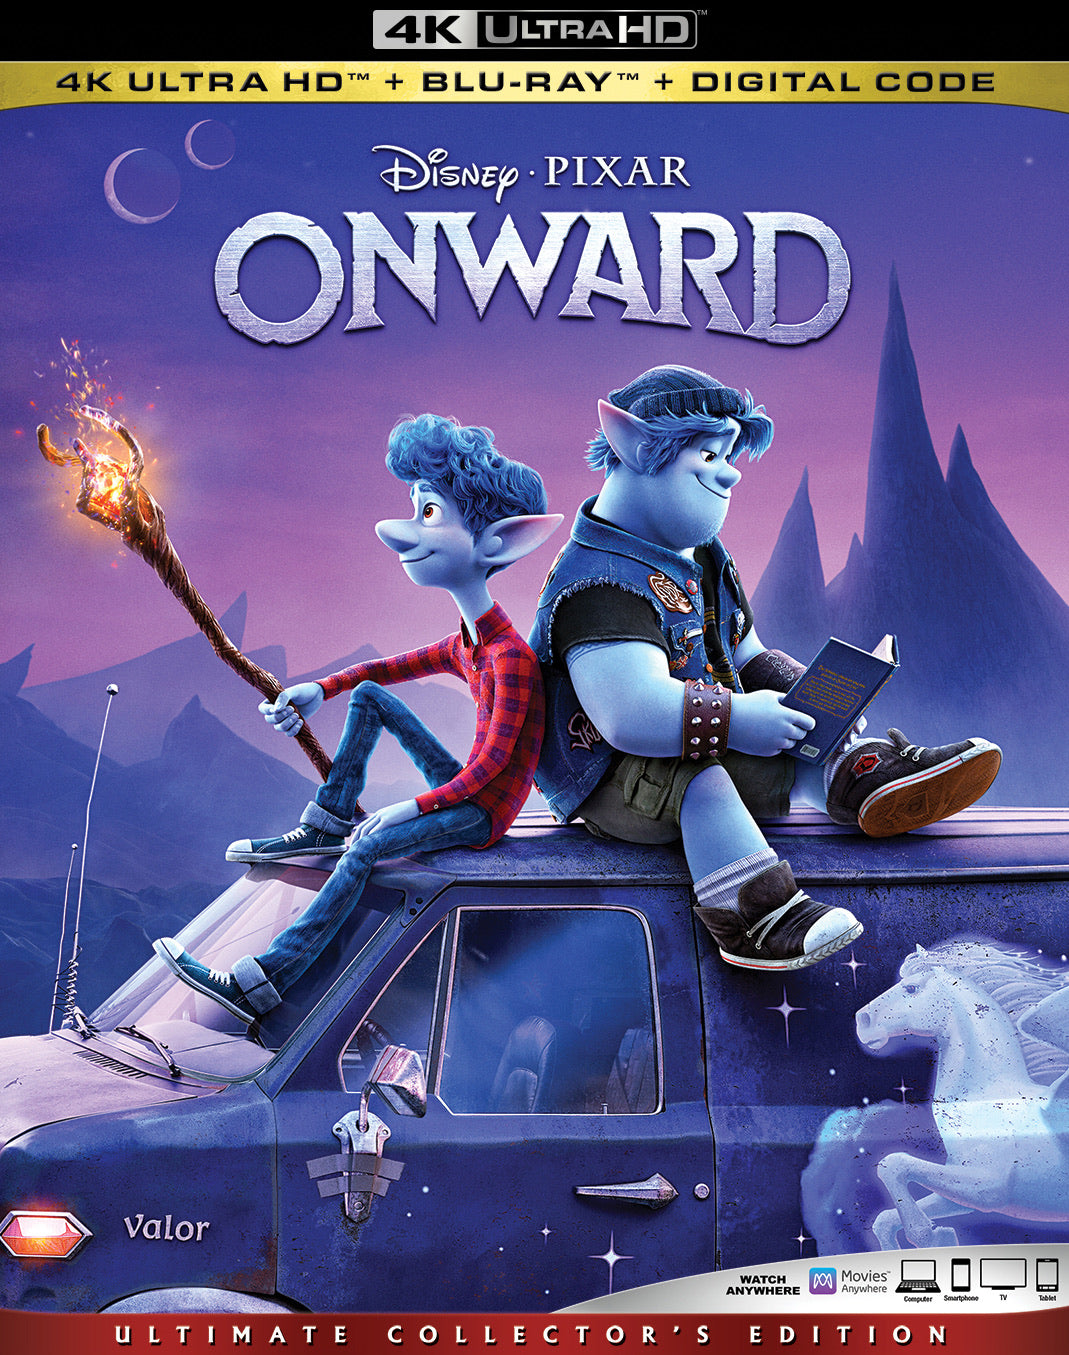 Onward (2020) Vudu or Movies Anywhere 4K redemption only